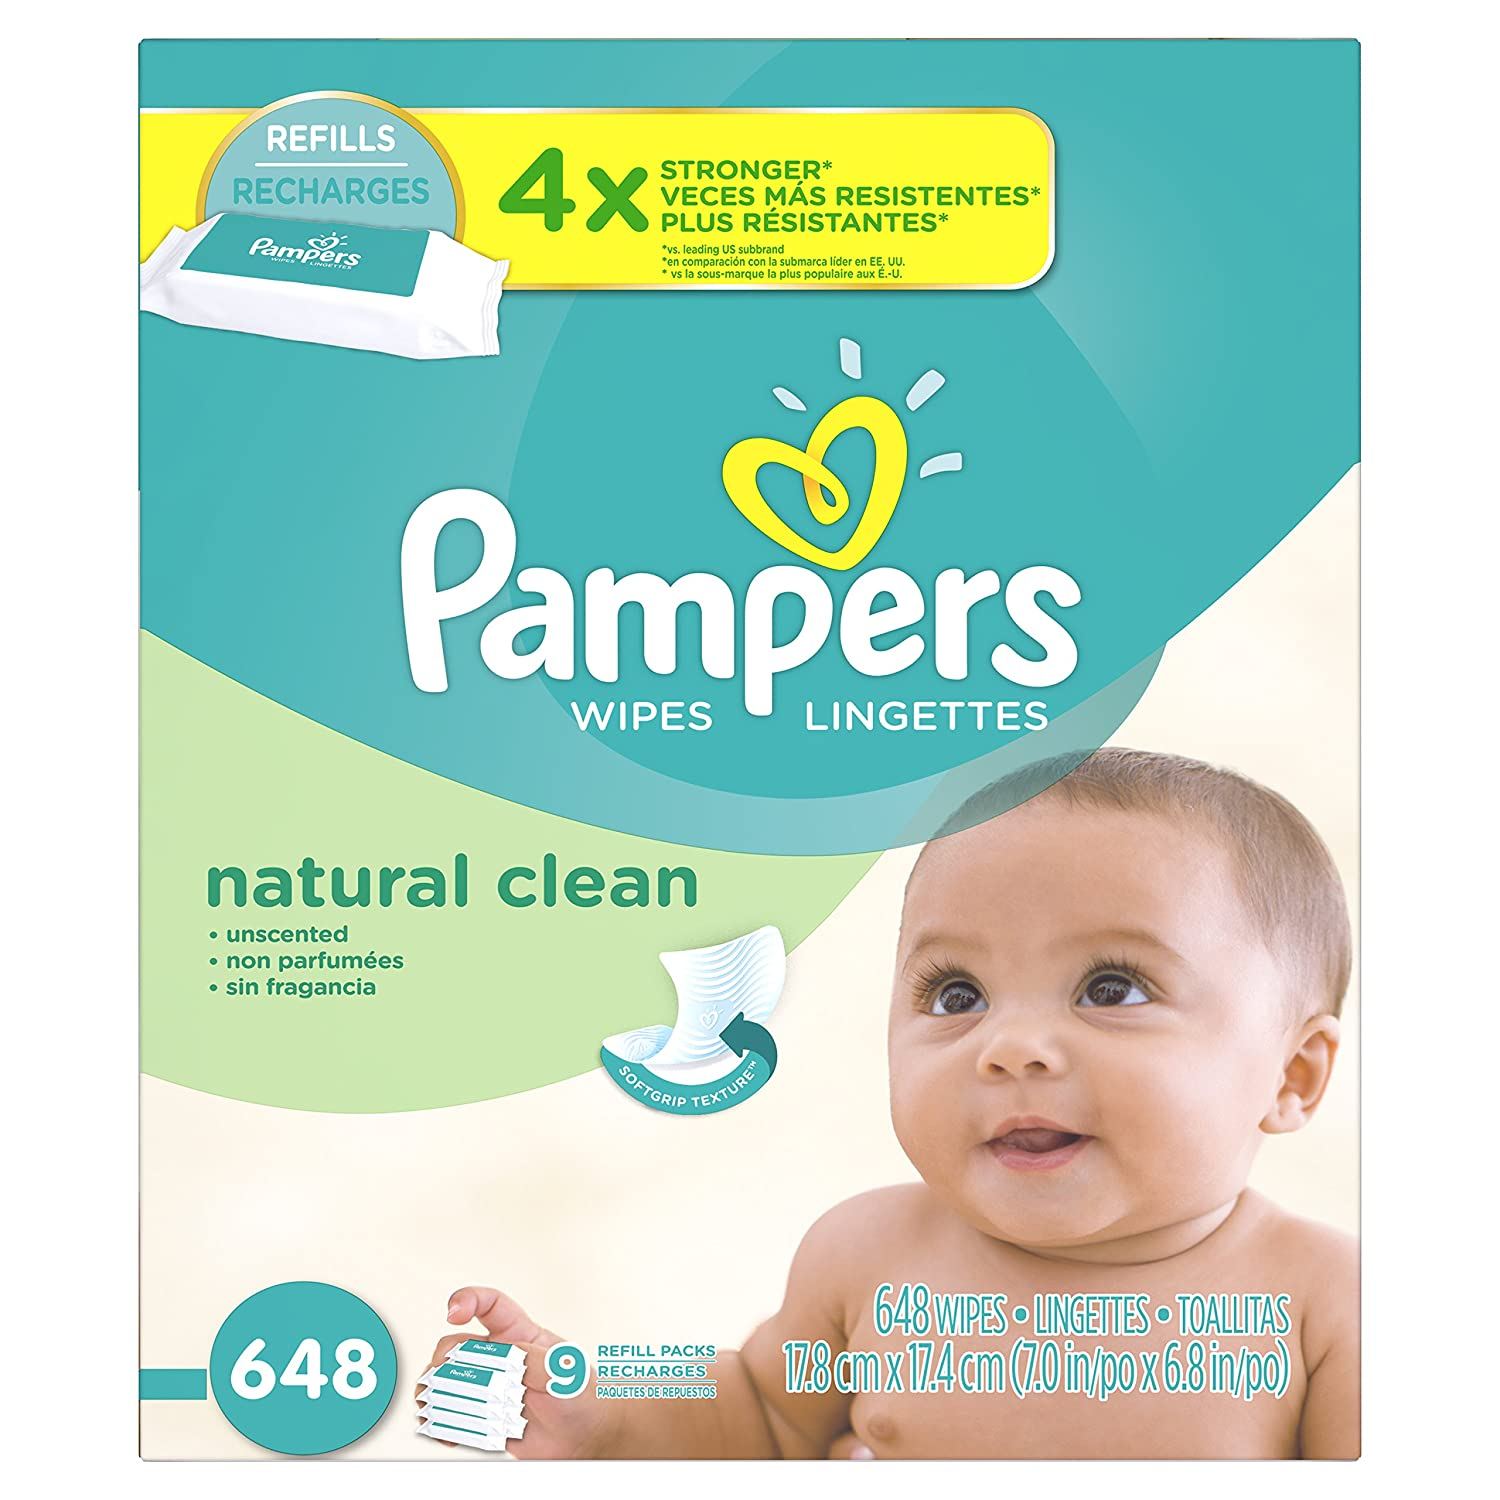 Pampers Natural Clean Unscented Water Baby Wipes 9X Refill Packs, 648 Count Procter & Gamble 10037000836749